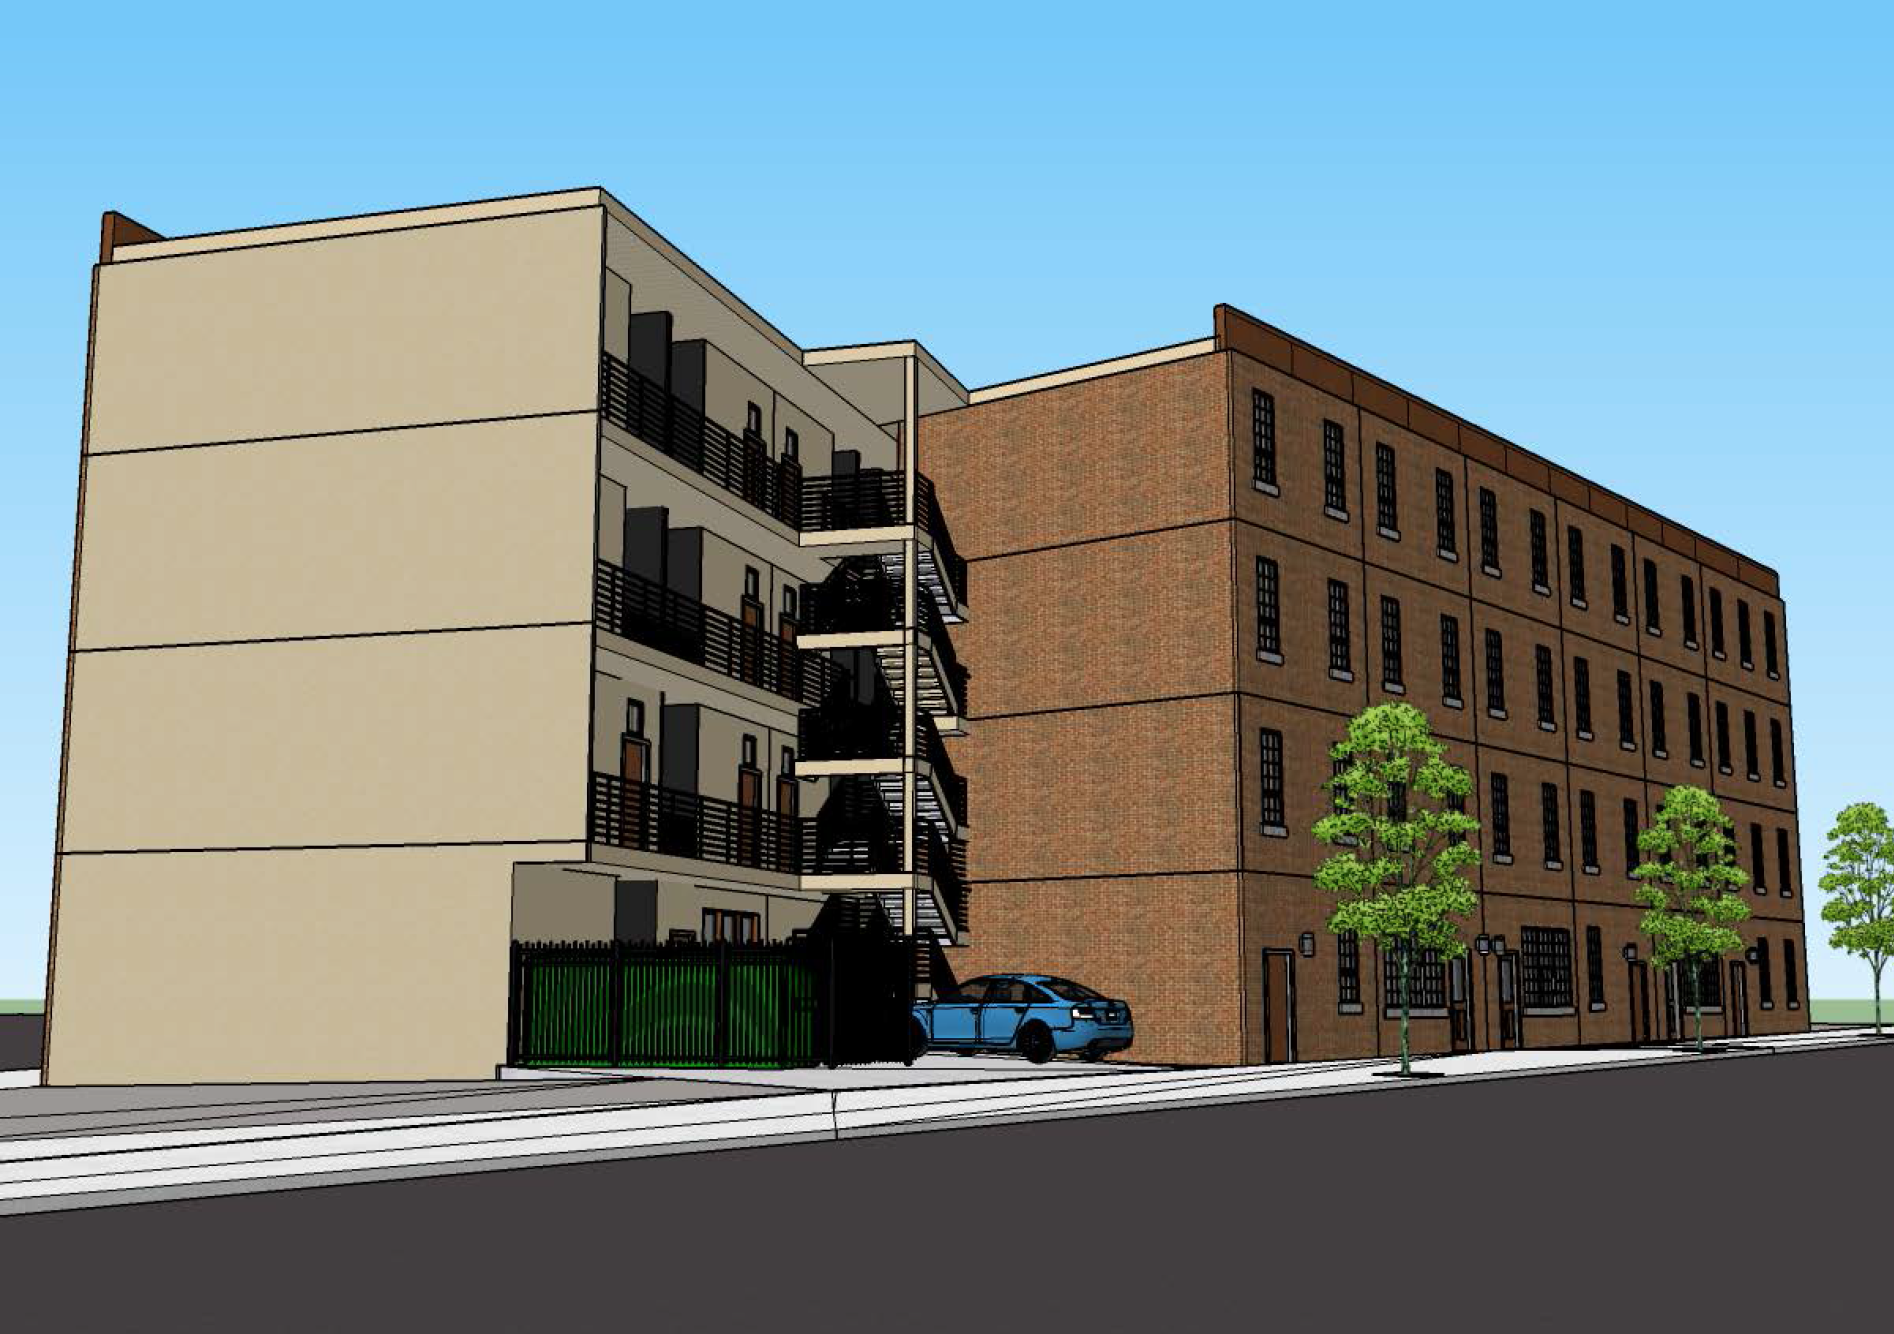 Studio Apartments Proposed For South Kensington Lot Curbed Philly